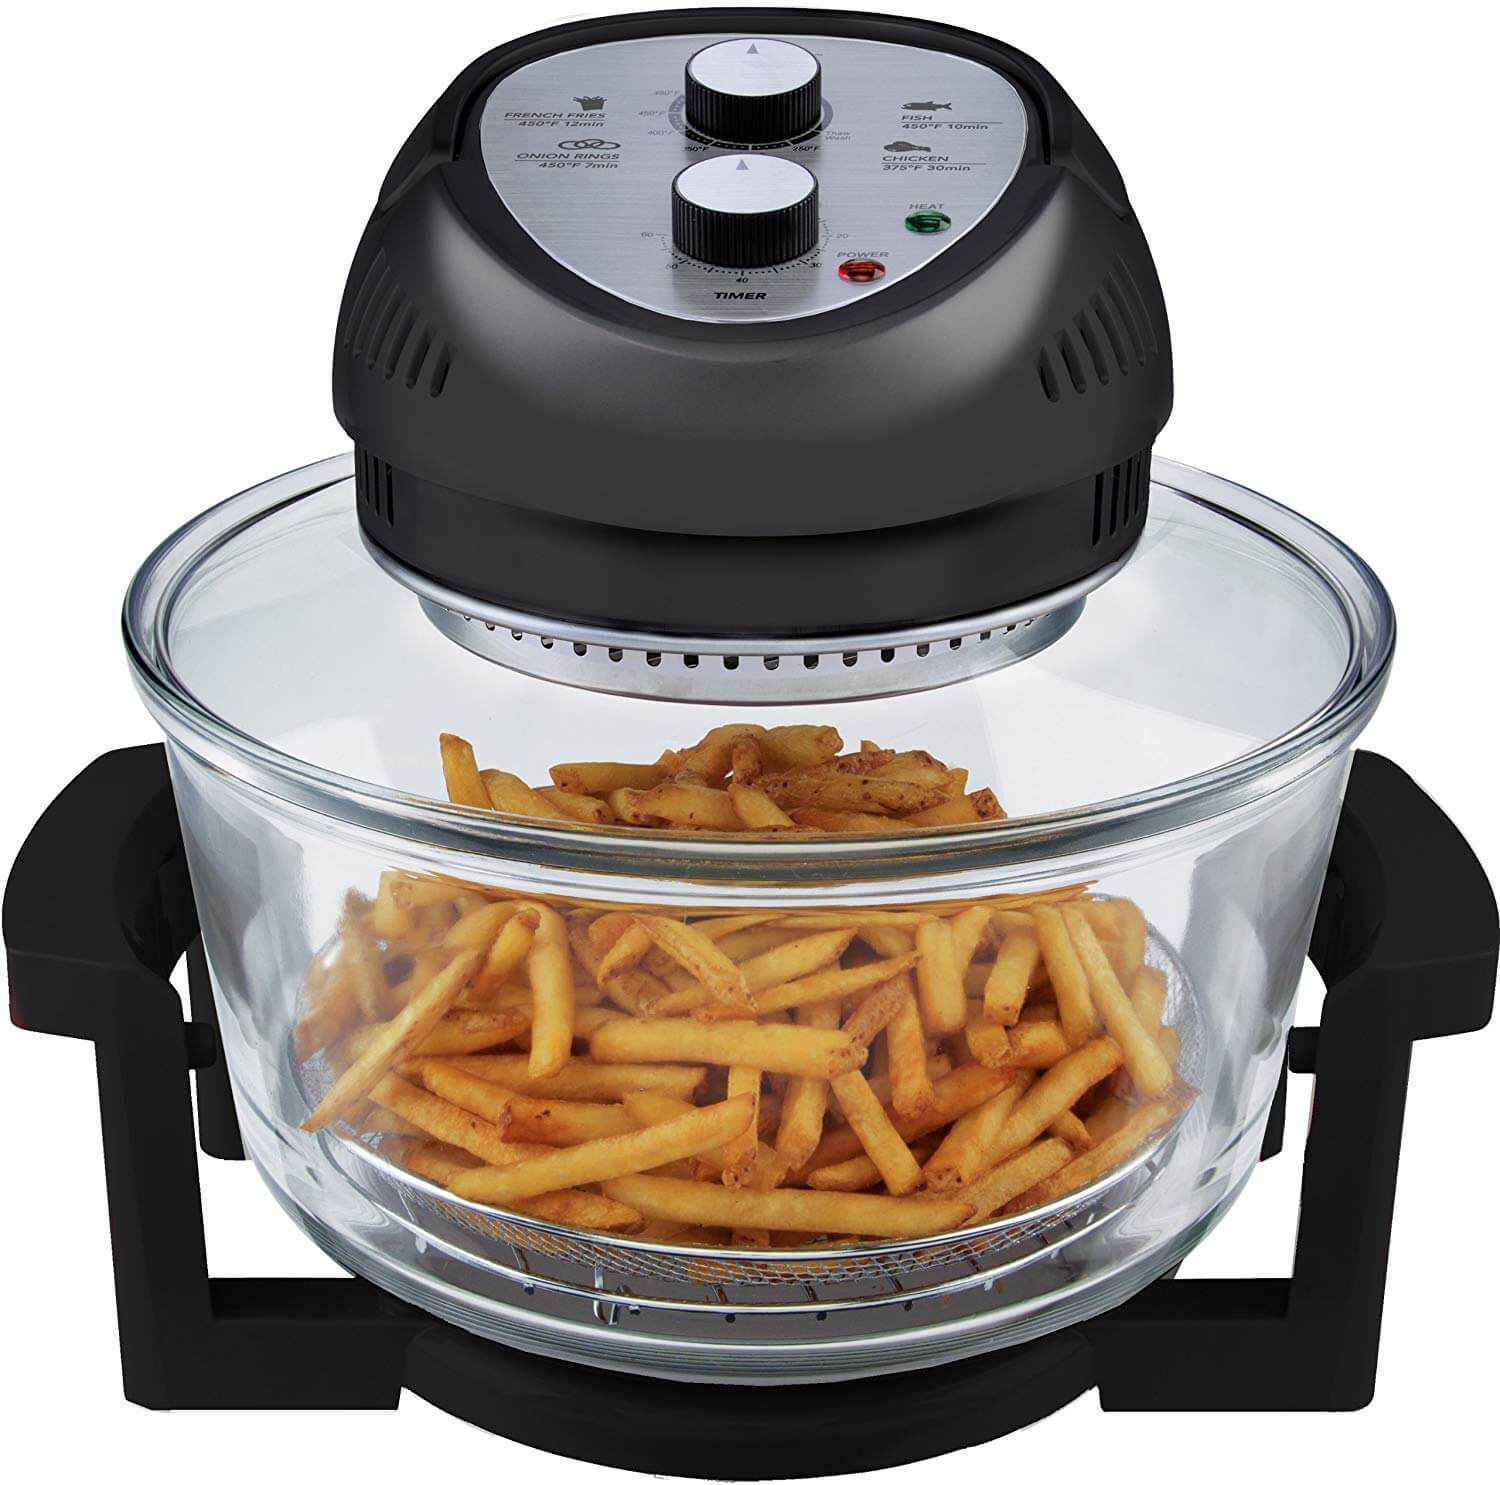 big-boss-air-fryer-reviews